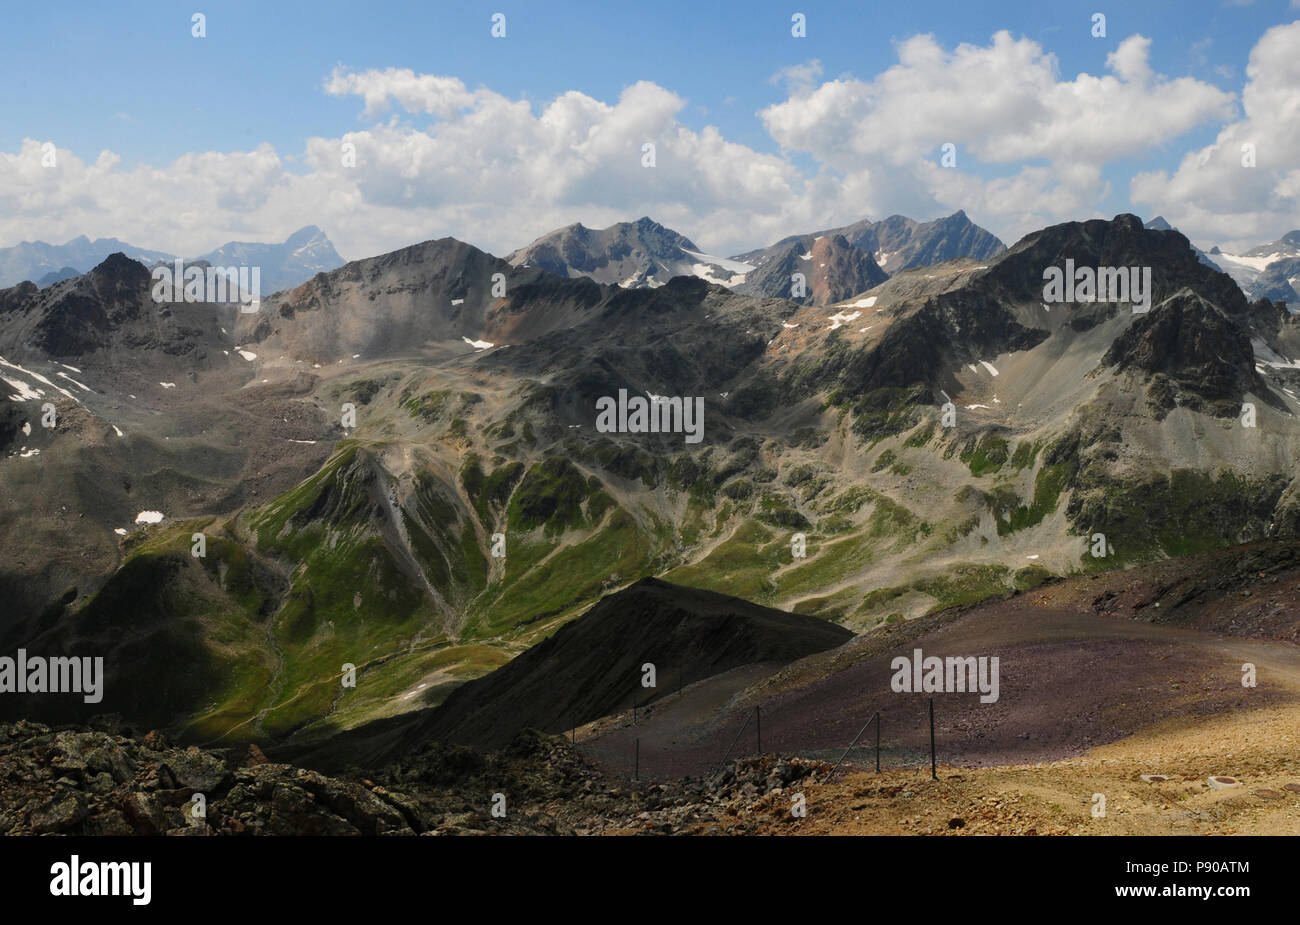 Melting Permafrost due to global clima change at Julier, Upper Engadin, Graubünden, Swiss Alps - Stock Image